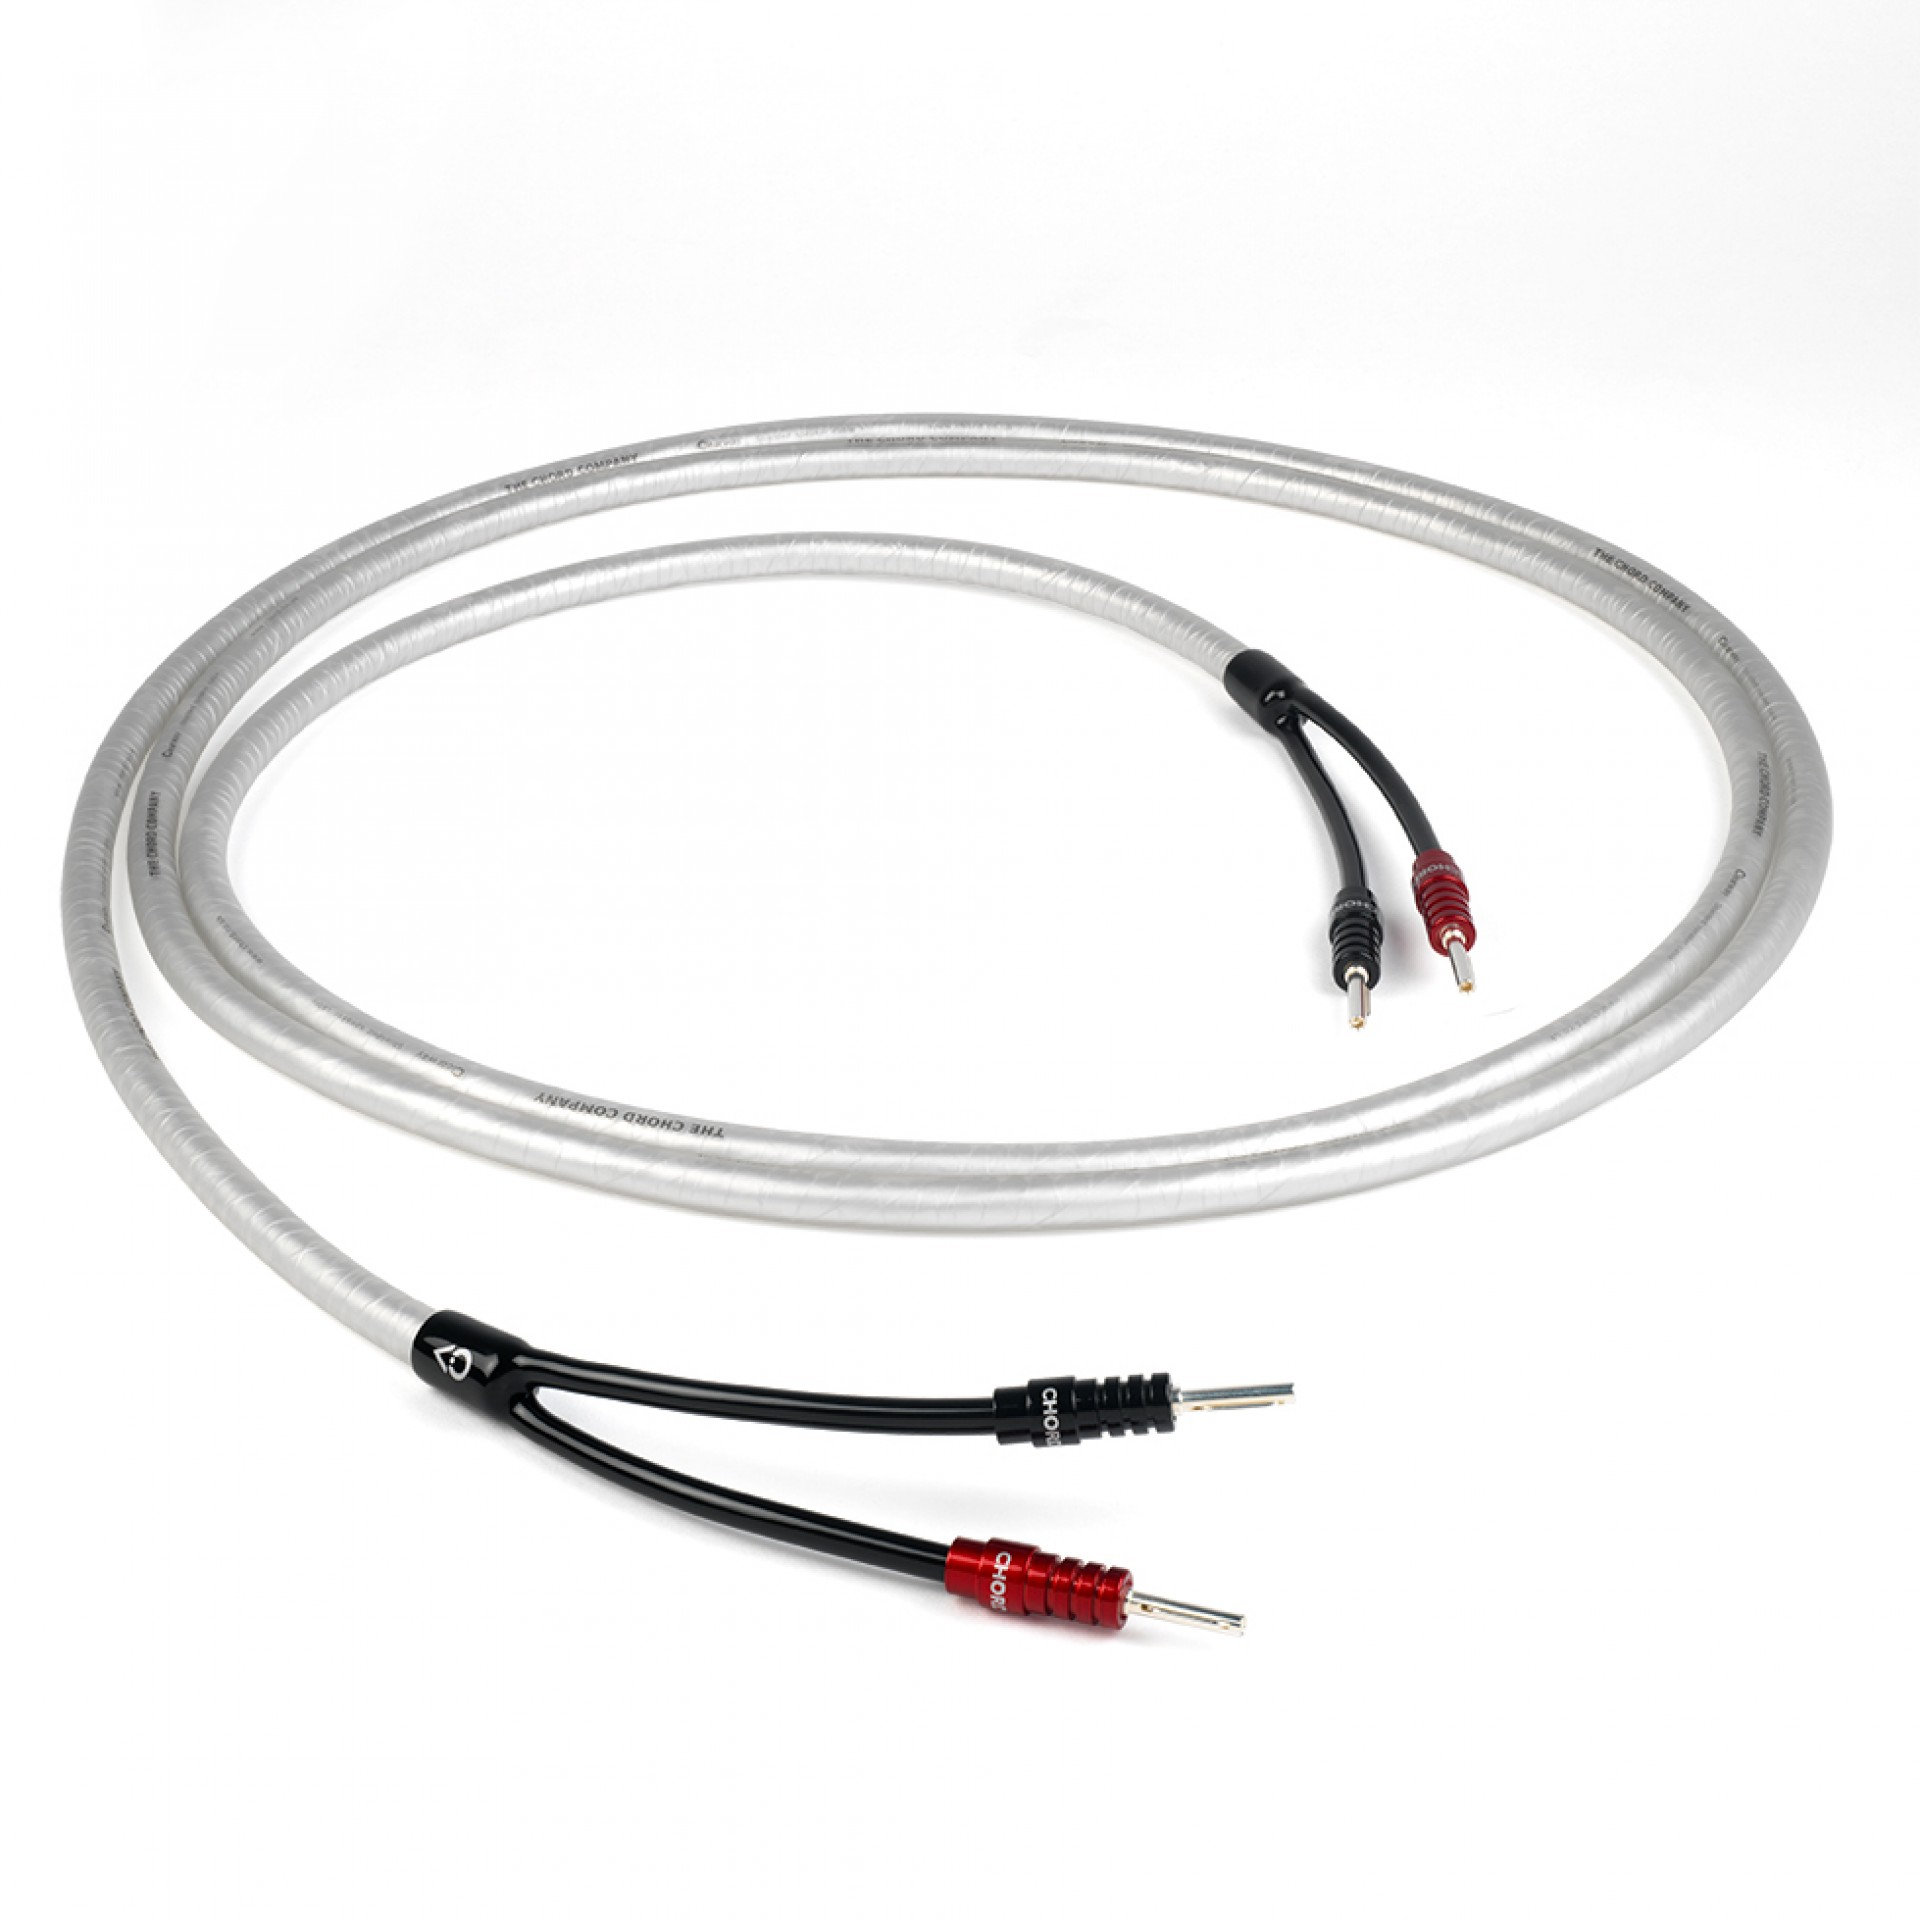 CHORD Clearway Speaker Cable 5m